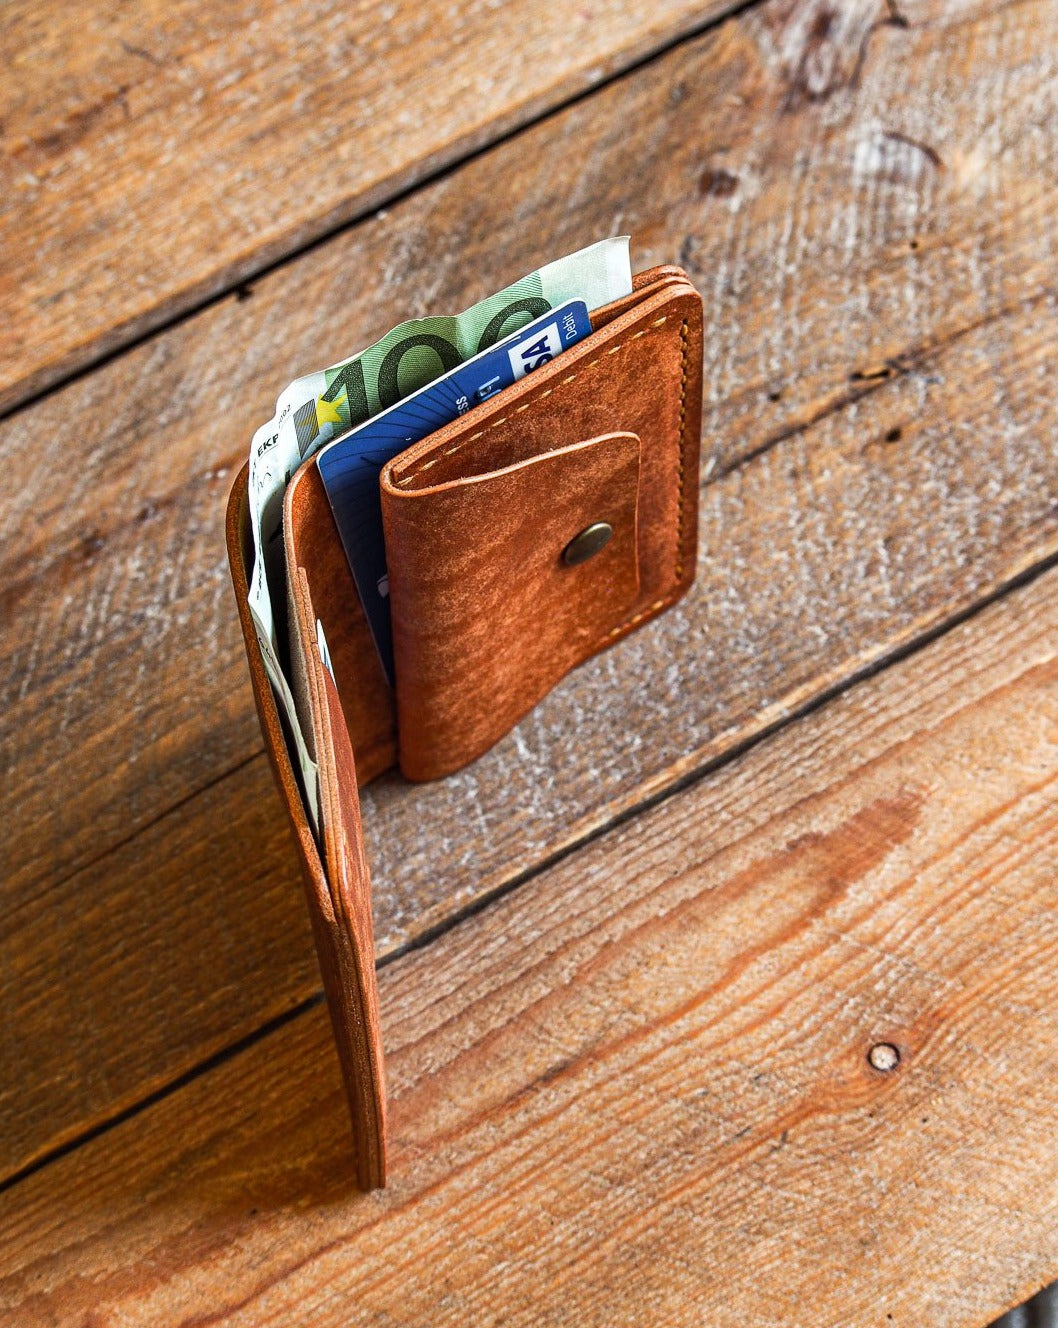 Luava handmade leather wallet KOLOSS pine card holder cardholder handcrafted pecos raw whiskey front open in use angle